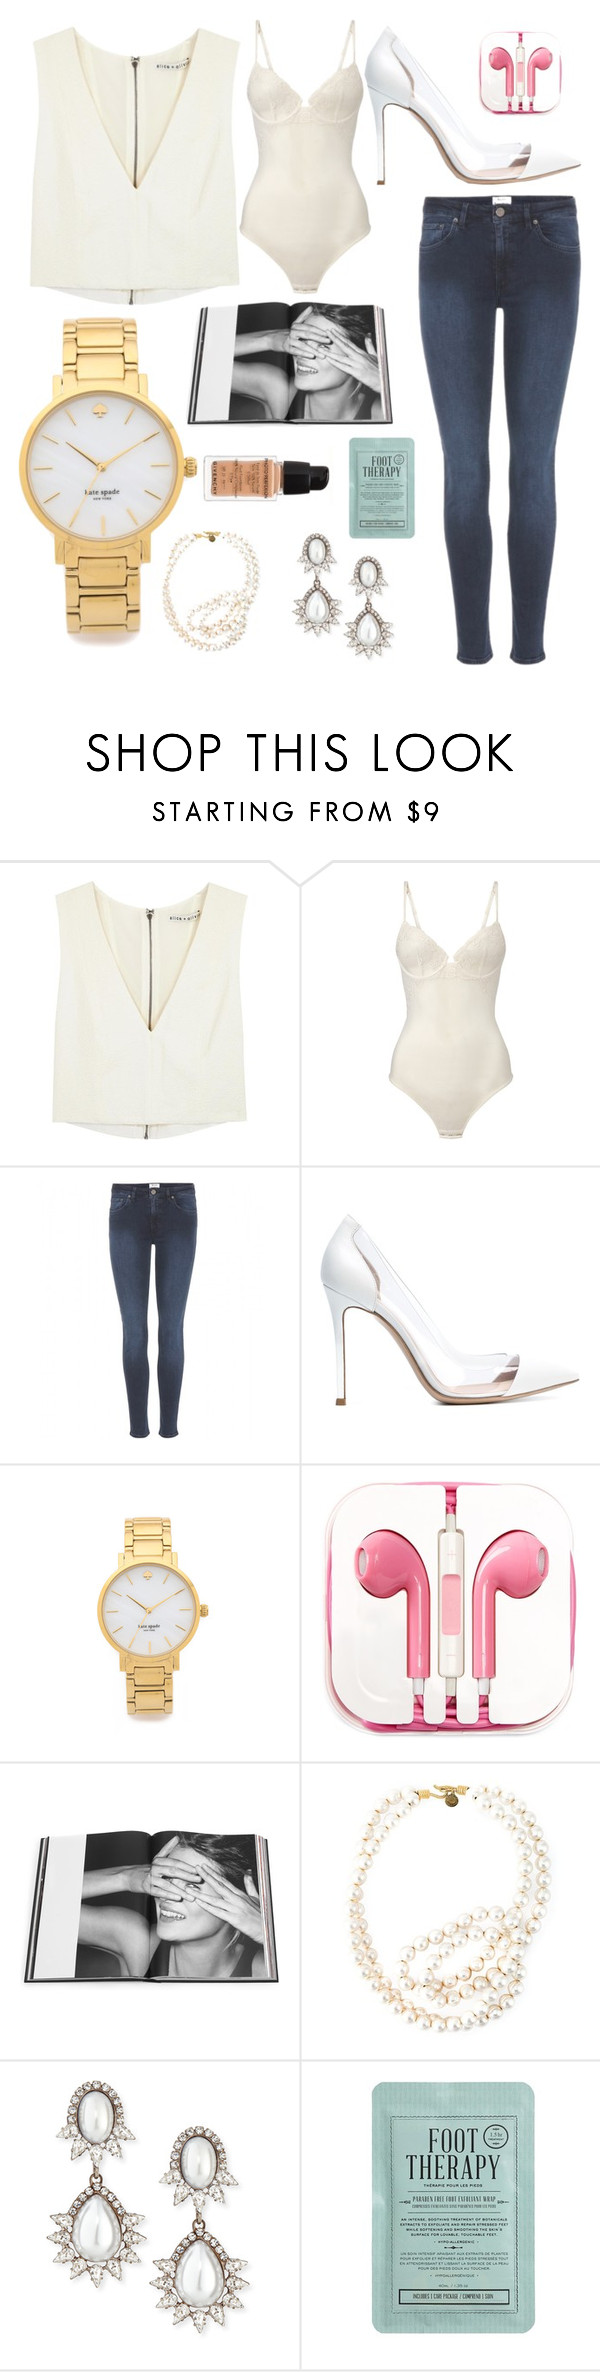 """Untitled #298"" by georgiabbbbb ❤ liked on Polyvore featuring Alice + Olivia, La Perla, Acne Studios, Gianvito Rossi, Kate Spade, PhunkeeTree, Rizzoli Publishing, STELLA McCARTNEY, DANNIJO and Kocostar"